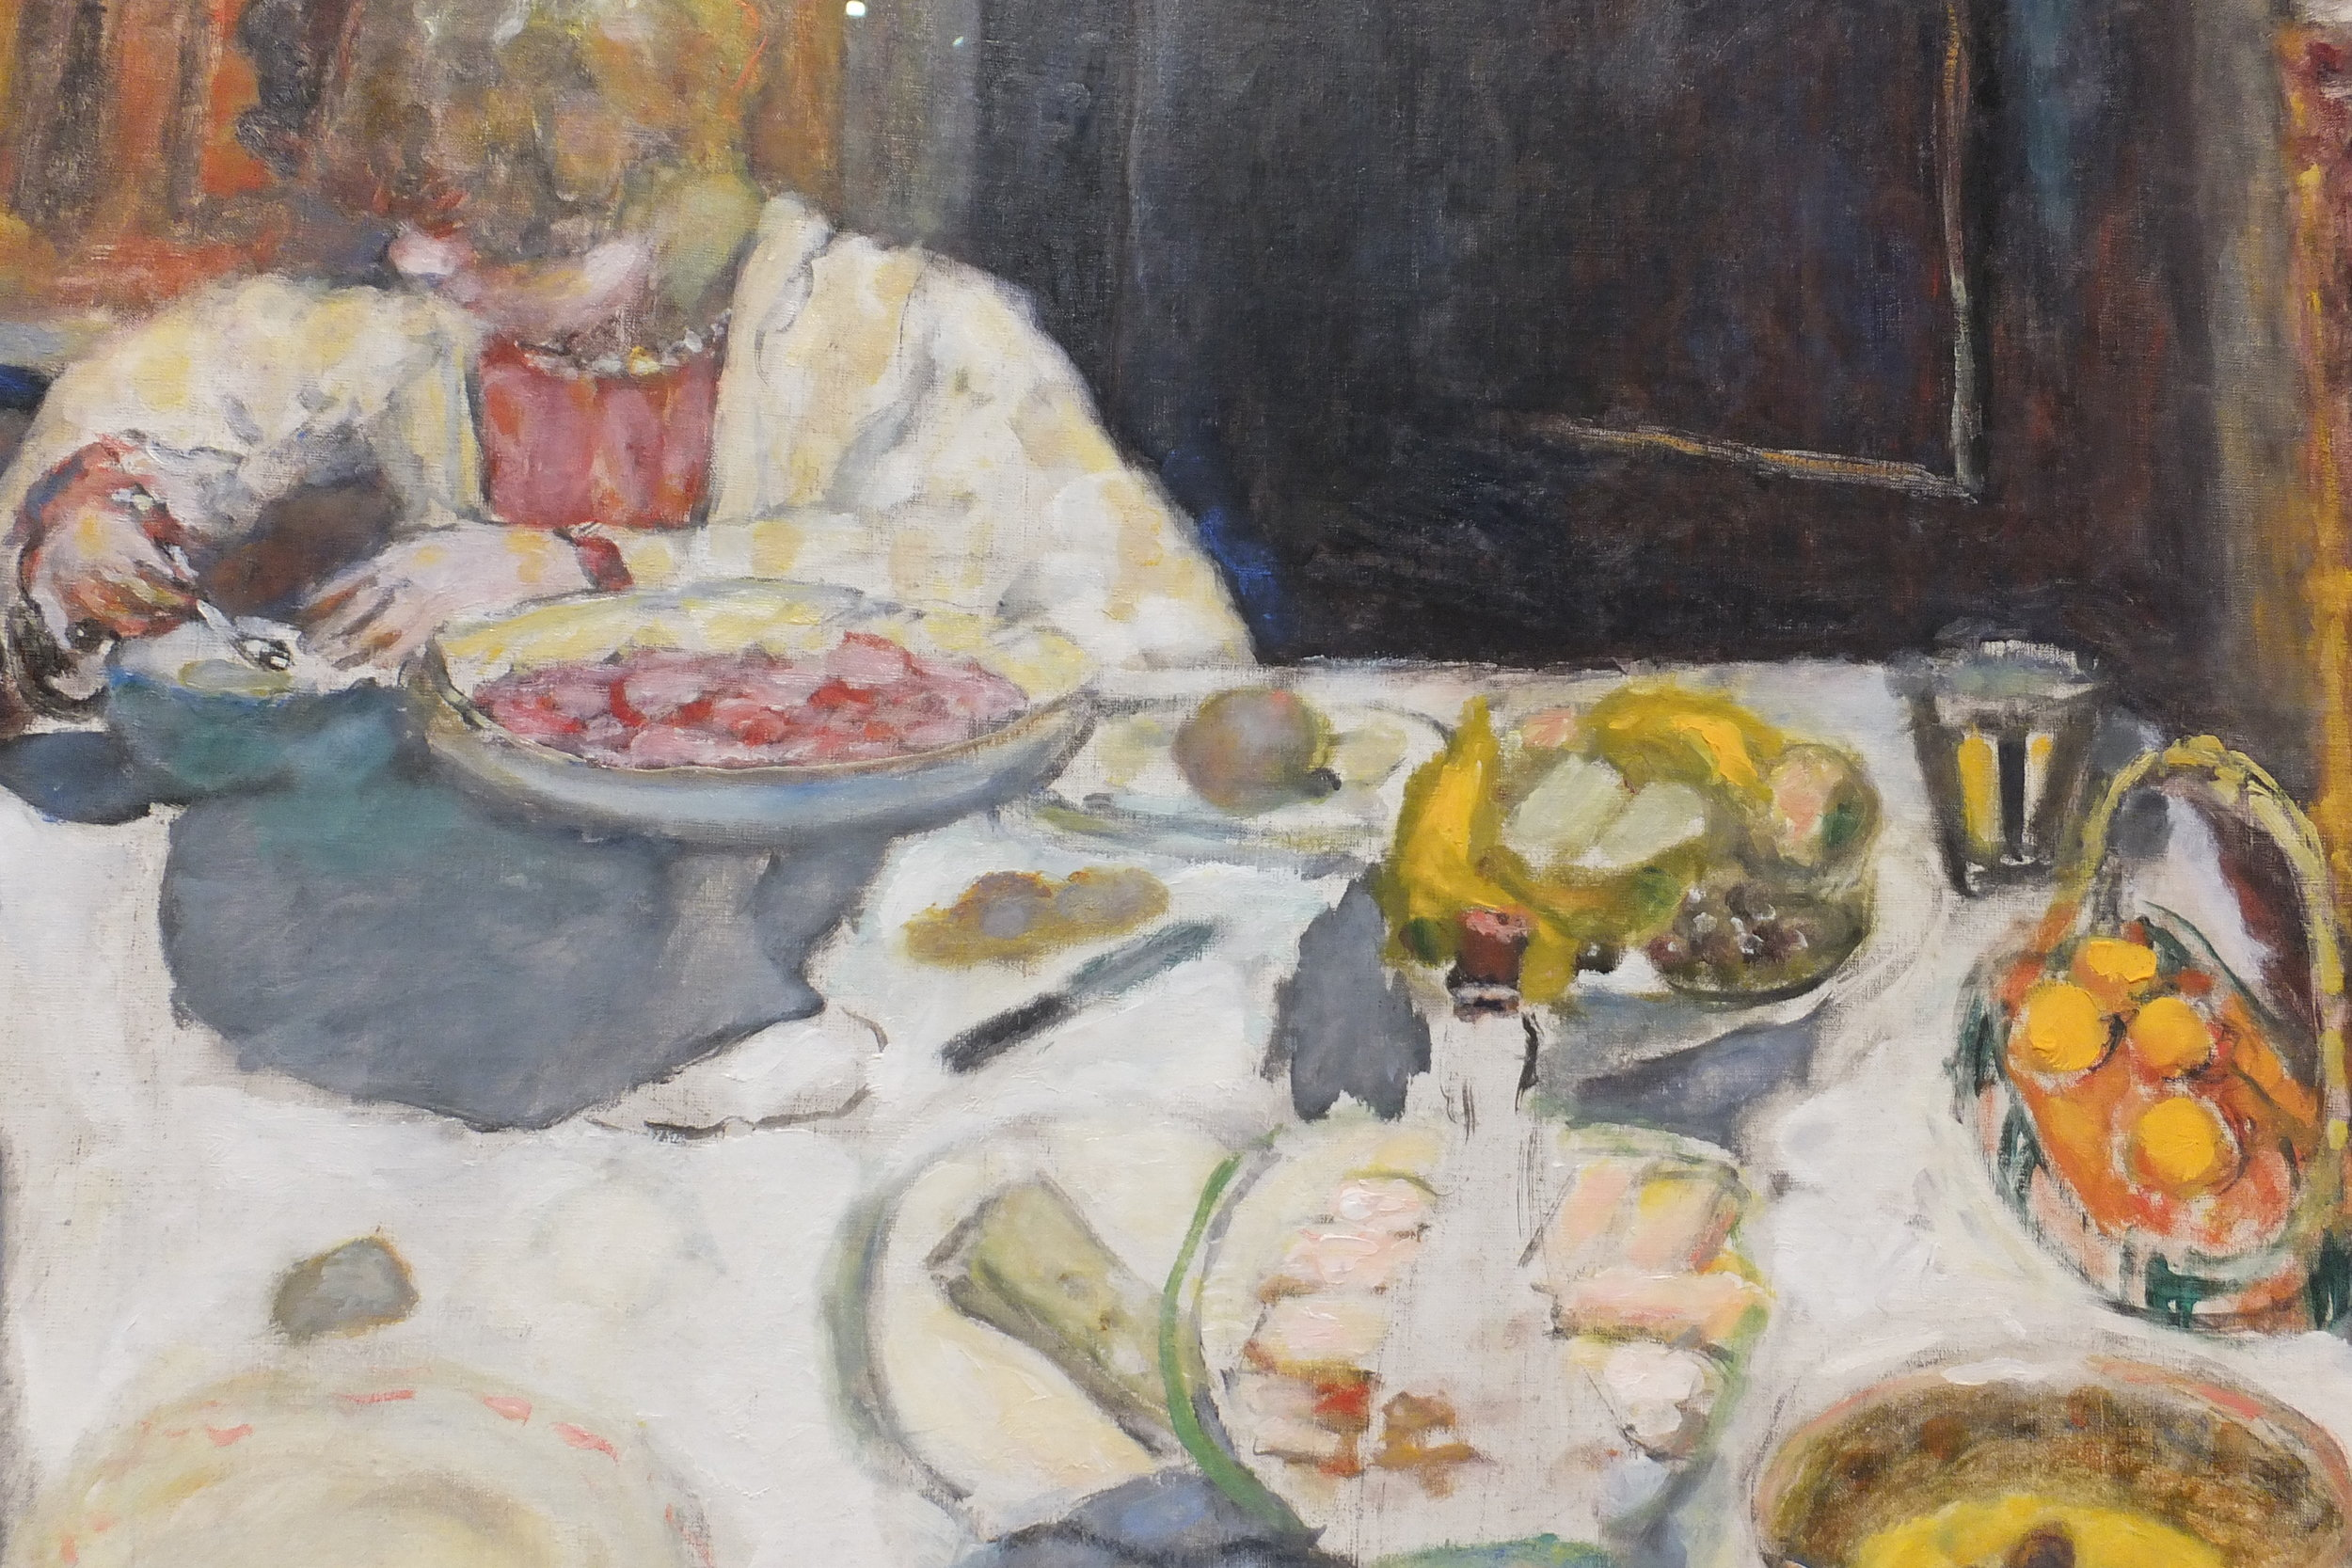 Pierre Bonnard, The Table (1925) (detail), Tate collection